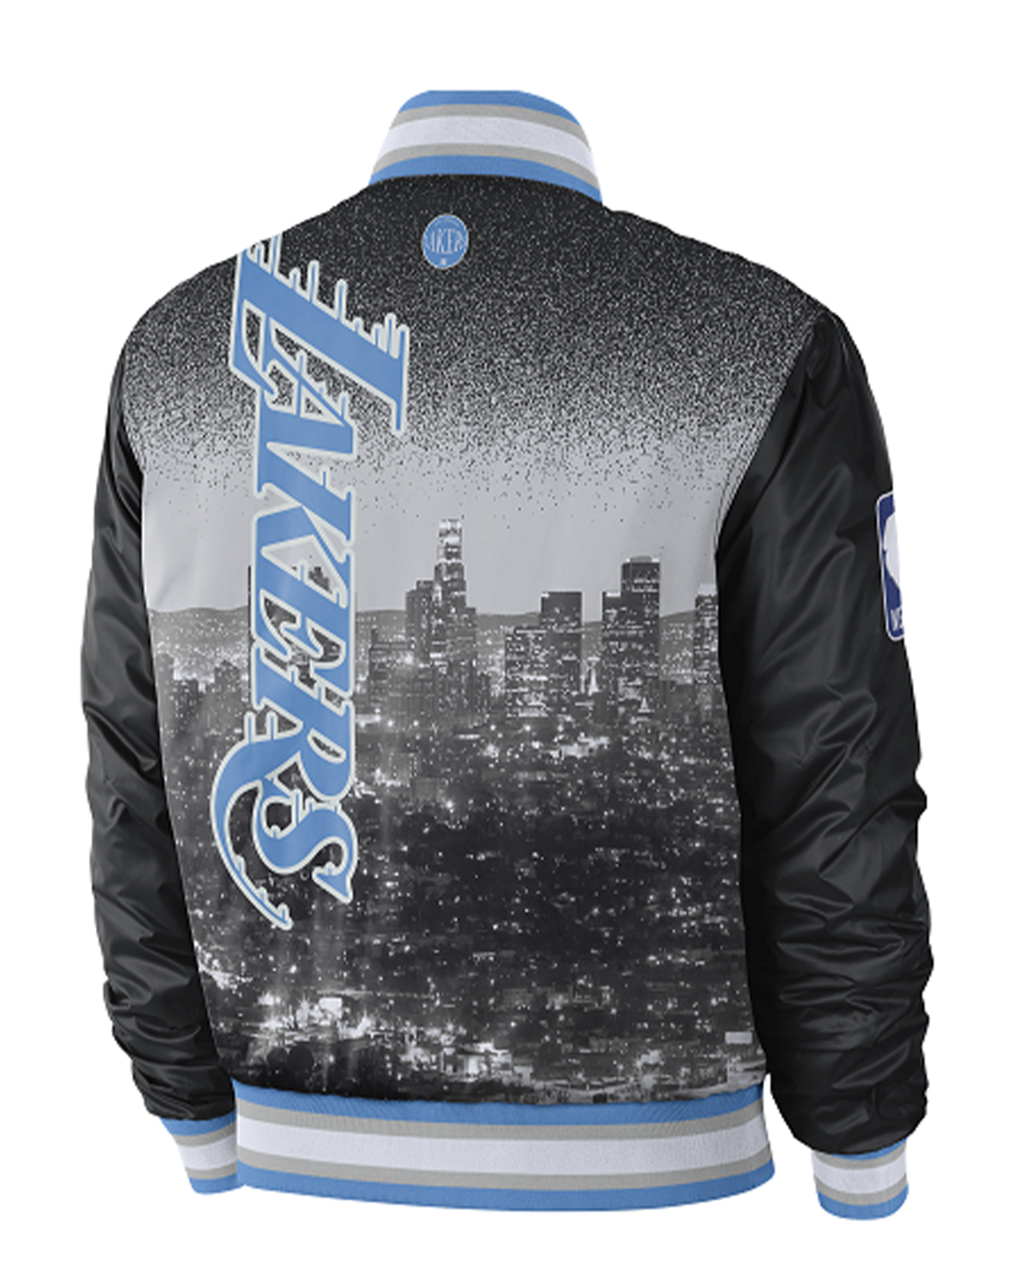 Los Angeles Lakers City Edition Courtside Jacket